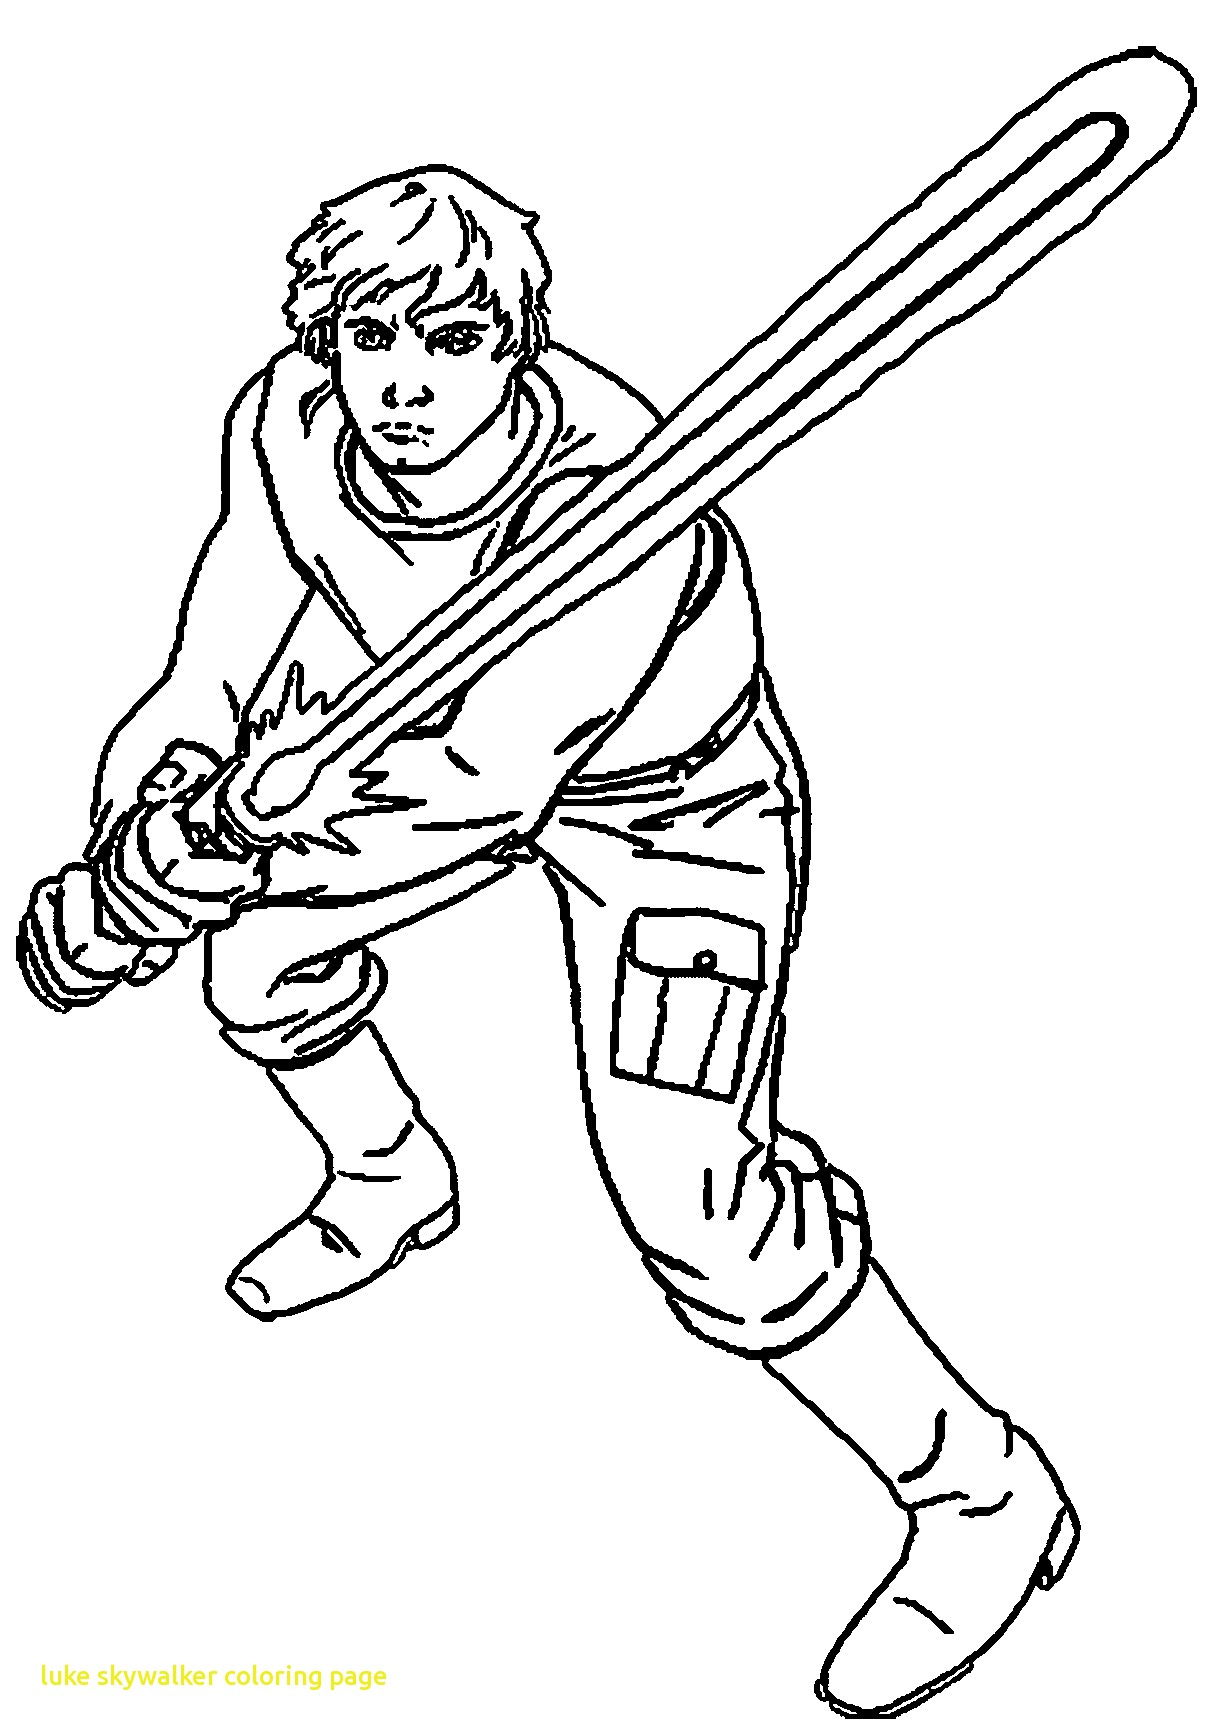 1228x1733 Luke Skywalker Clipart Colouring Page